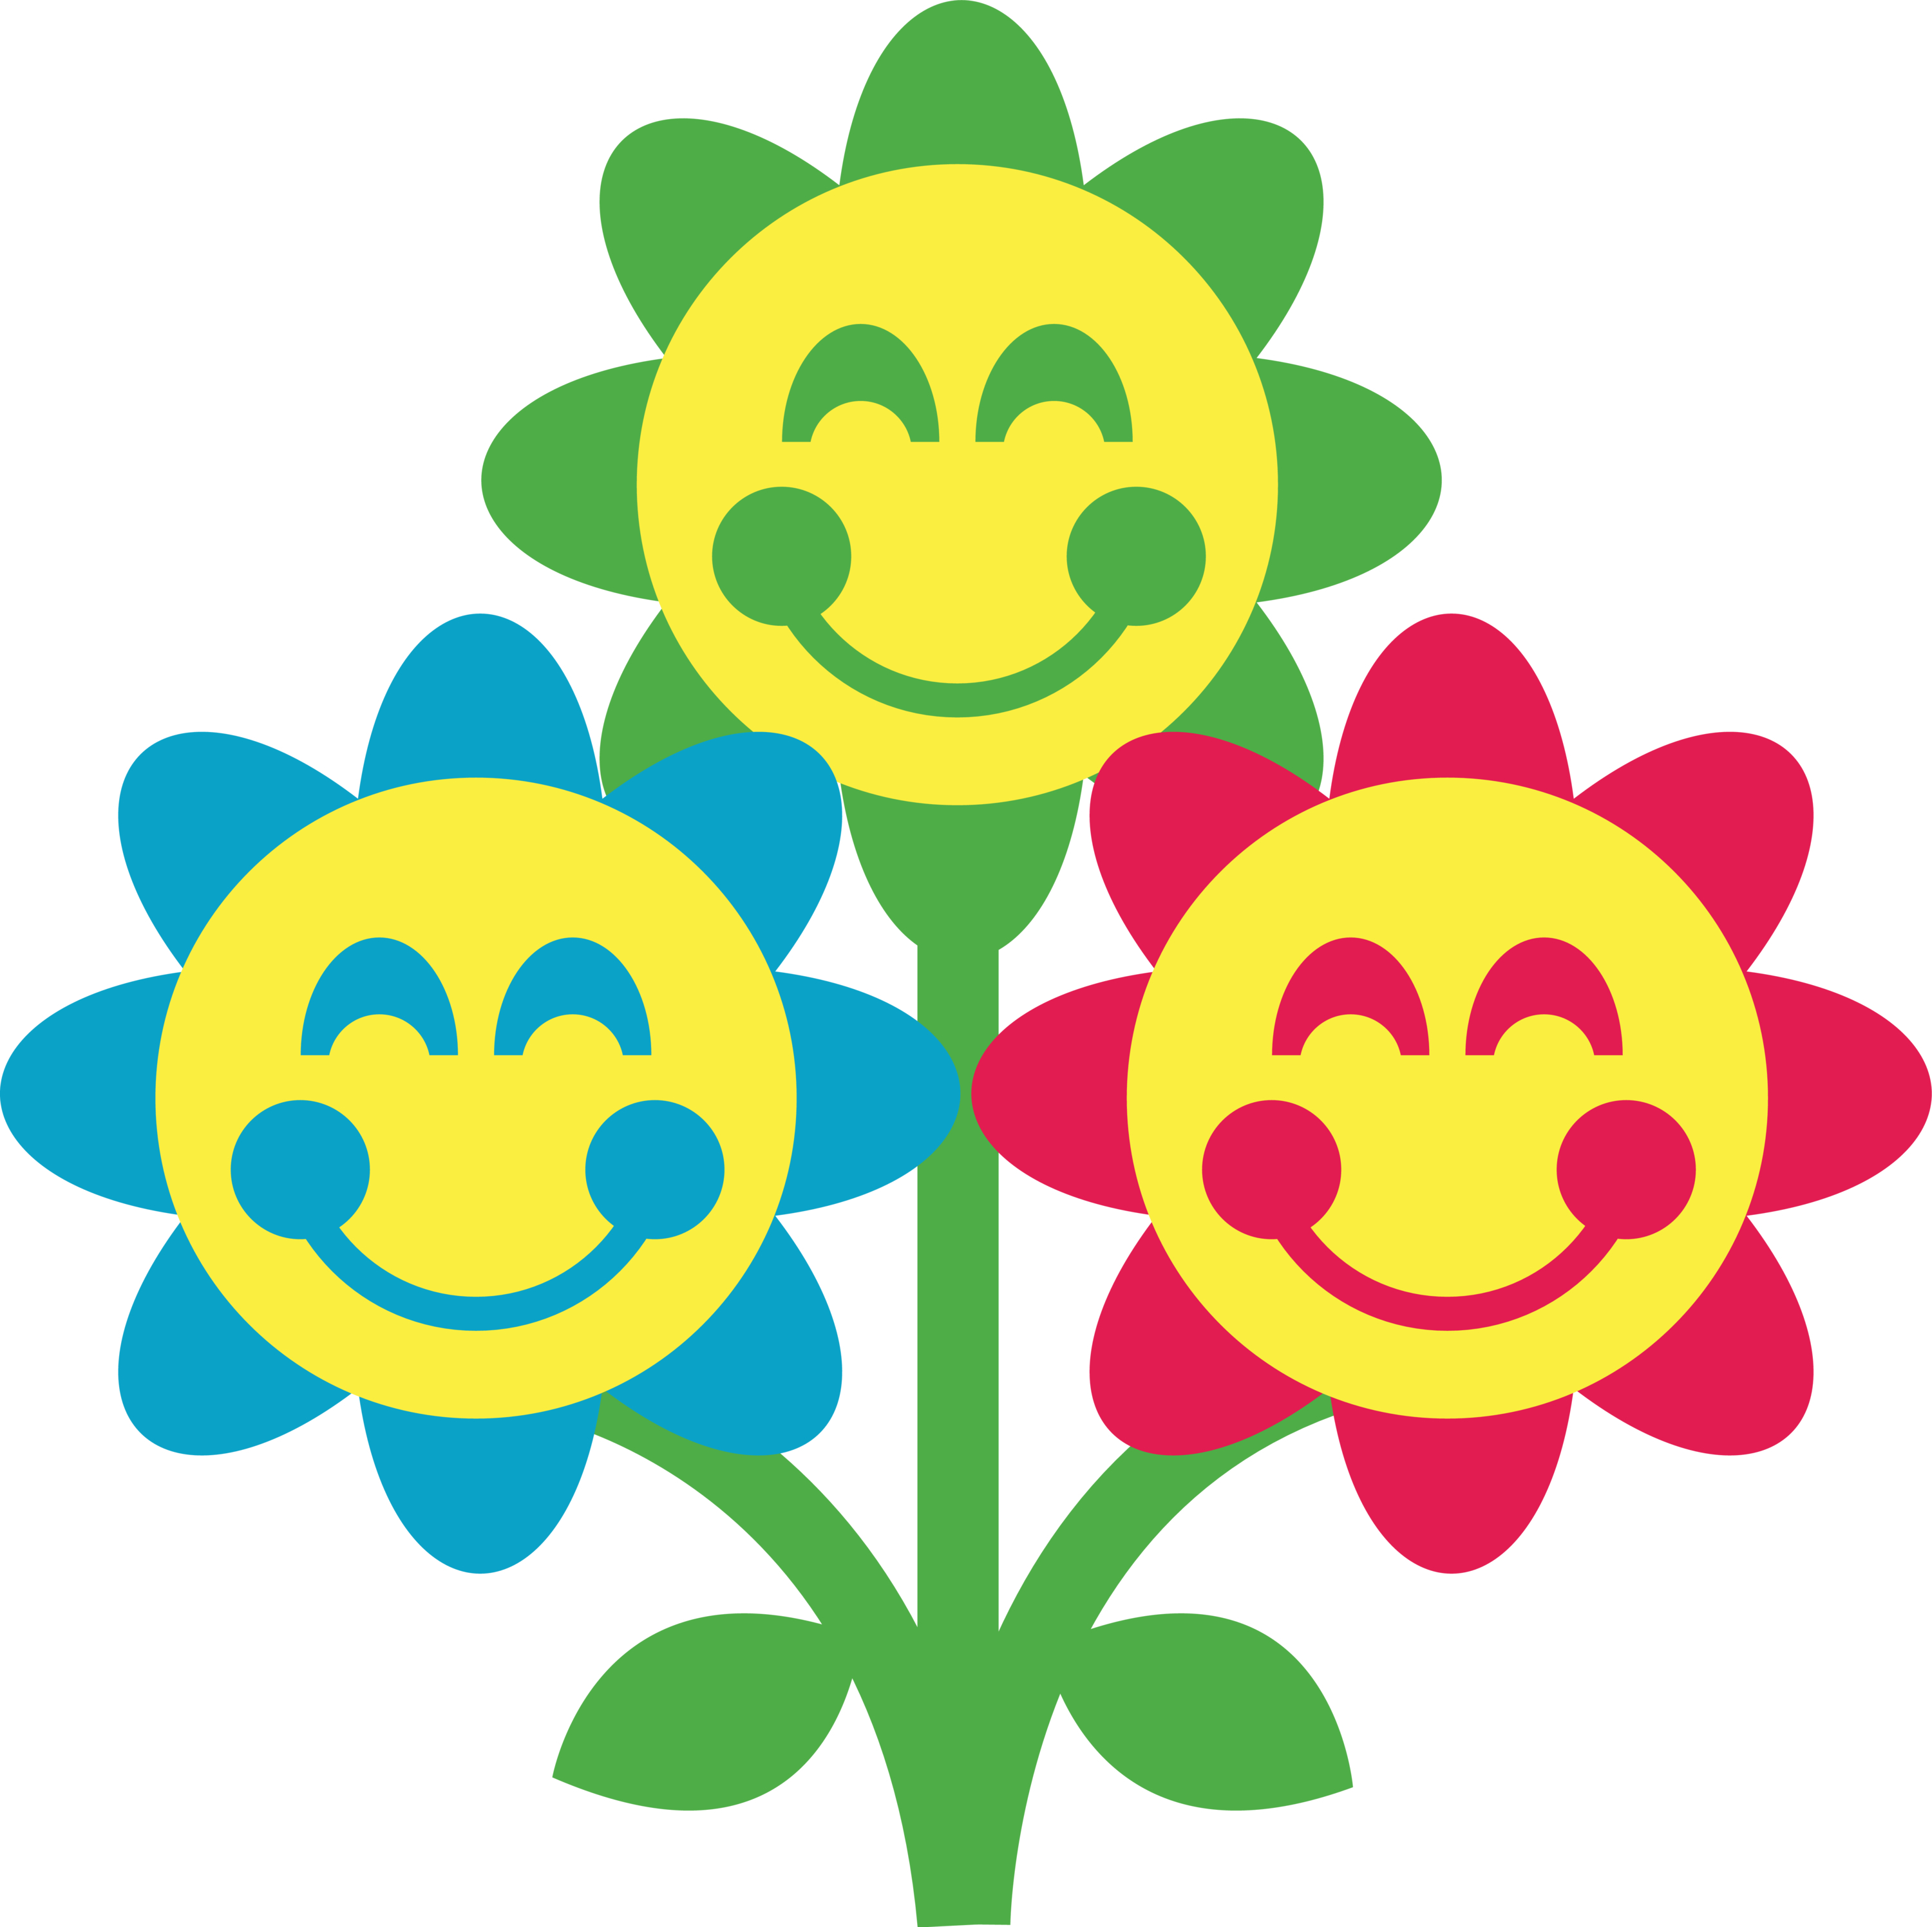 Blue Flower clipart smiley flower Free Download Smiley Free Clip